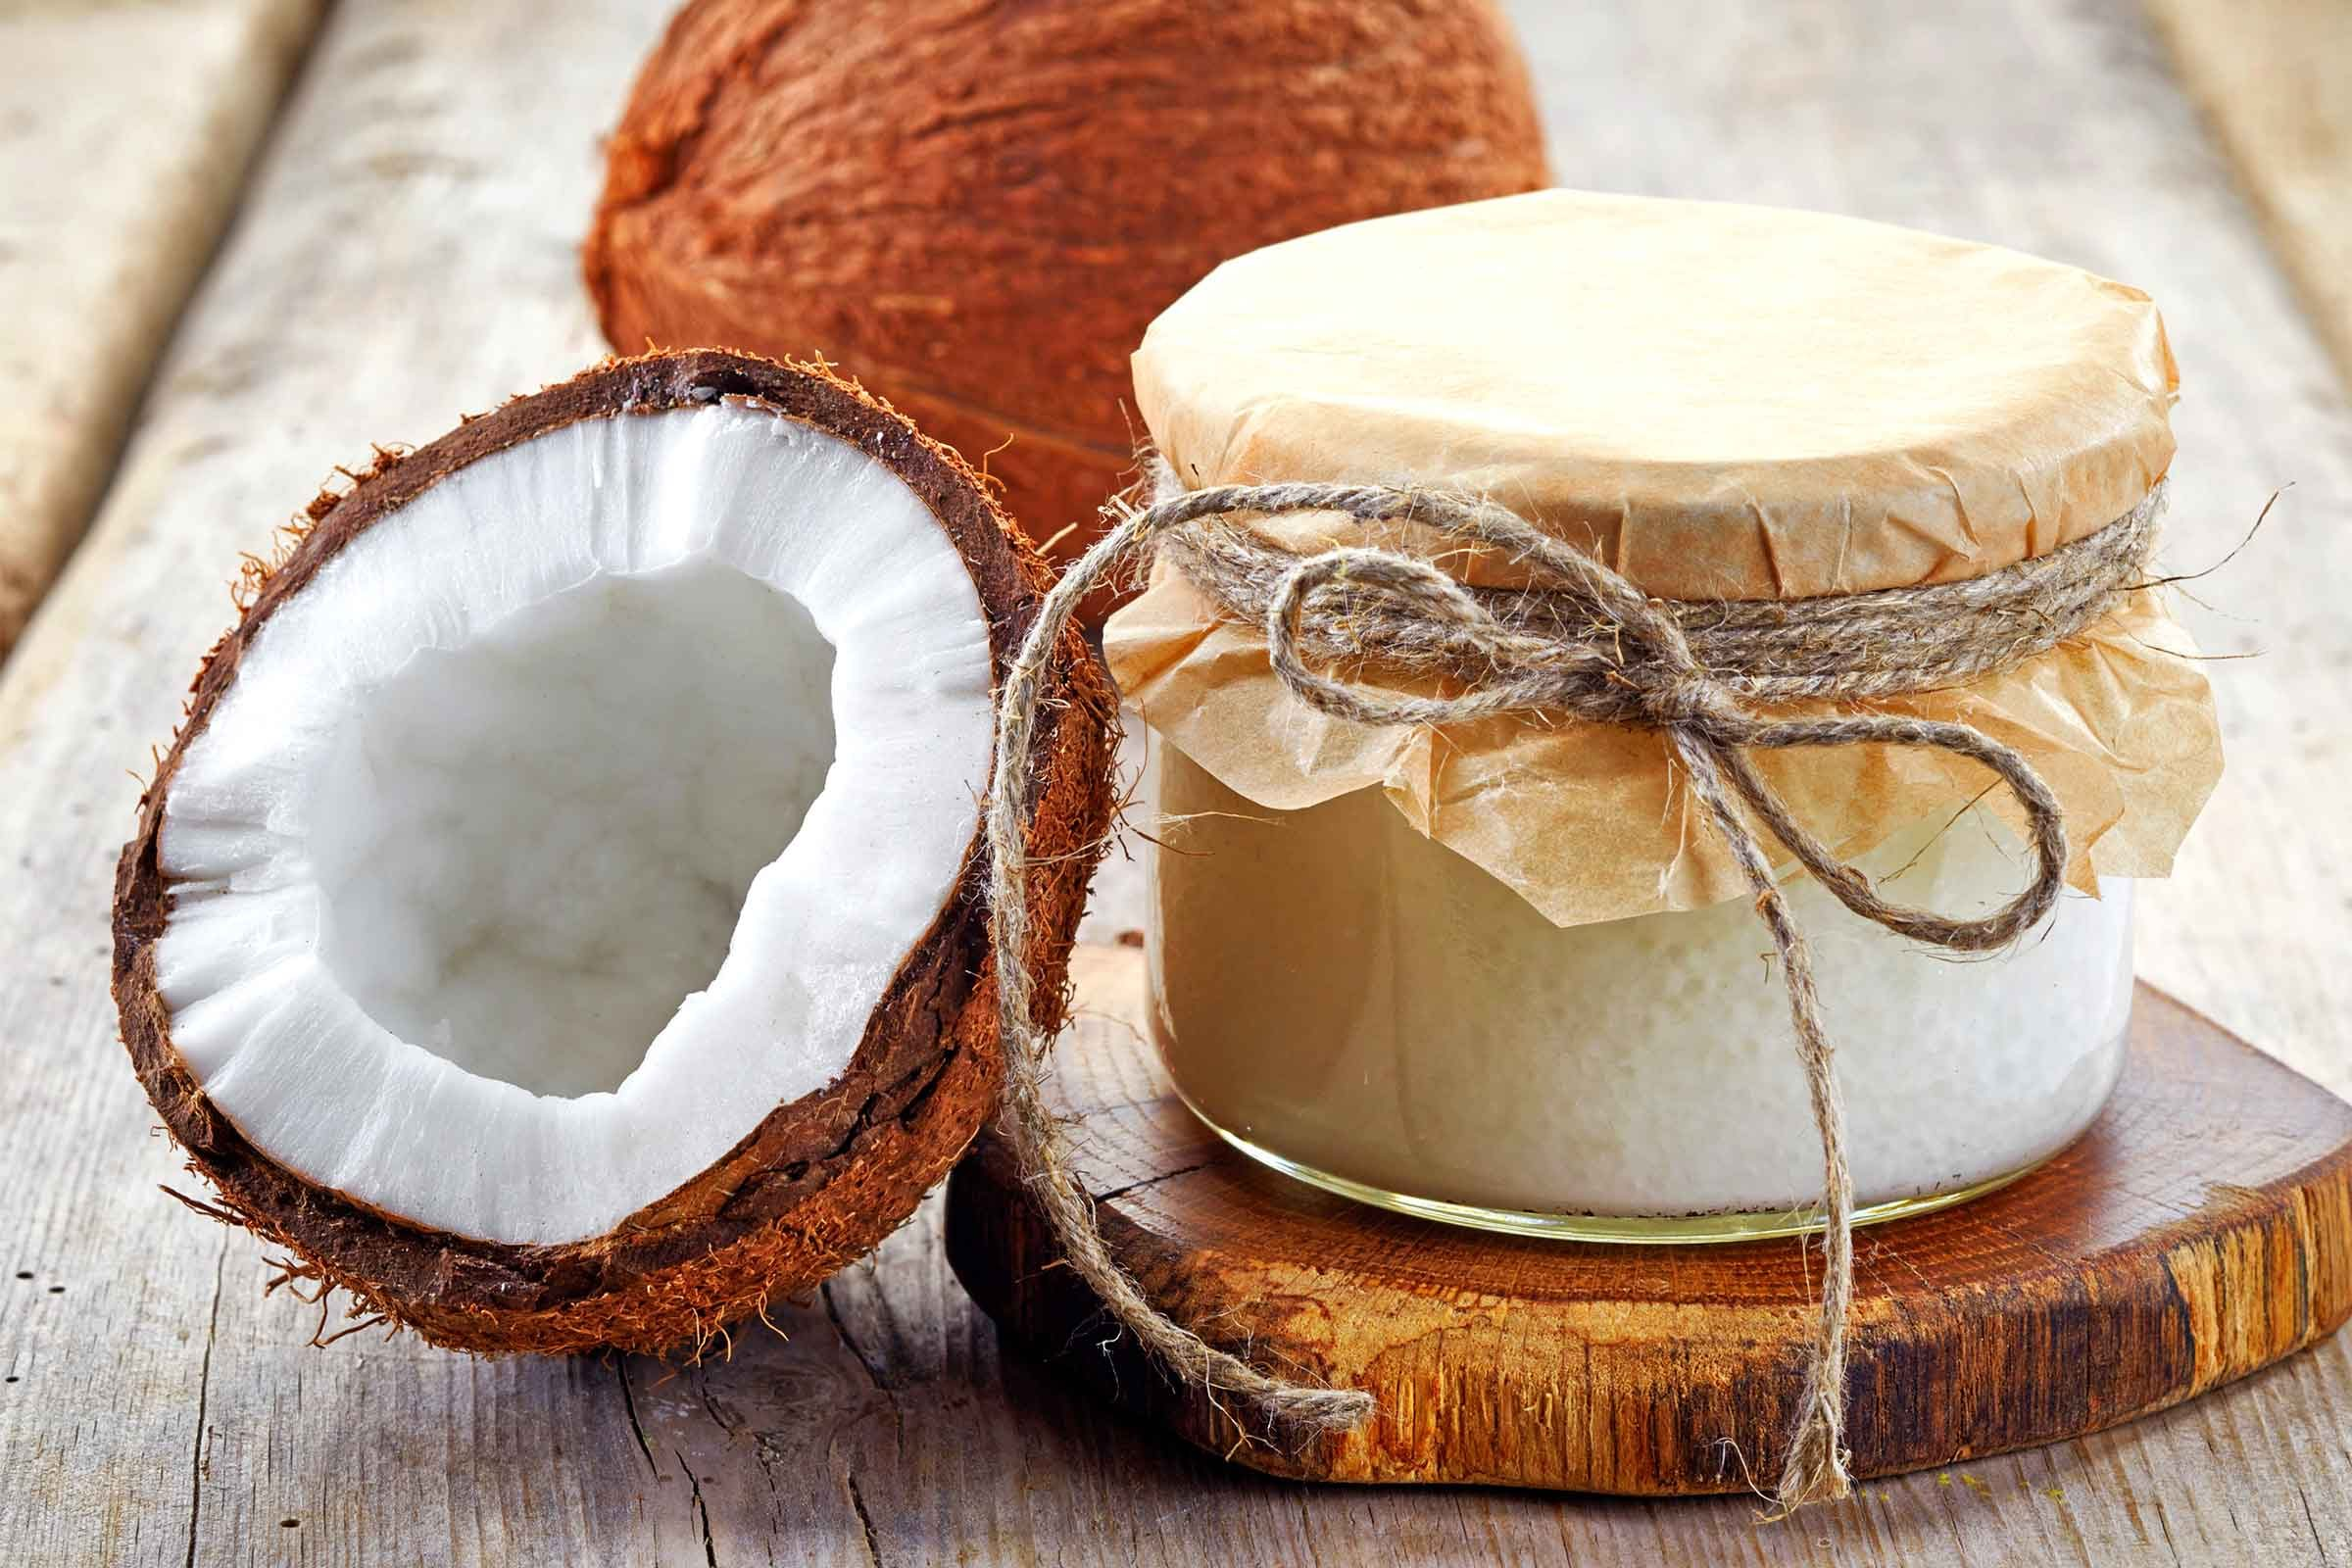 Lose Belly Fat with These Home Remedies | Reader's Digest ...